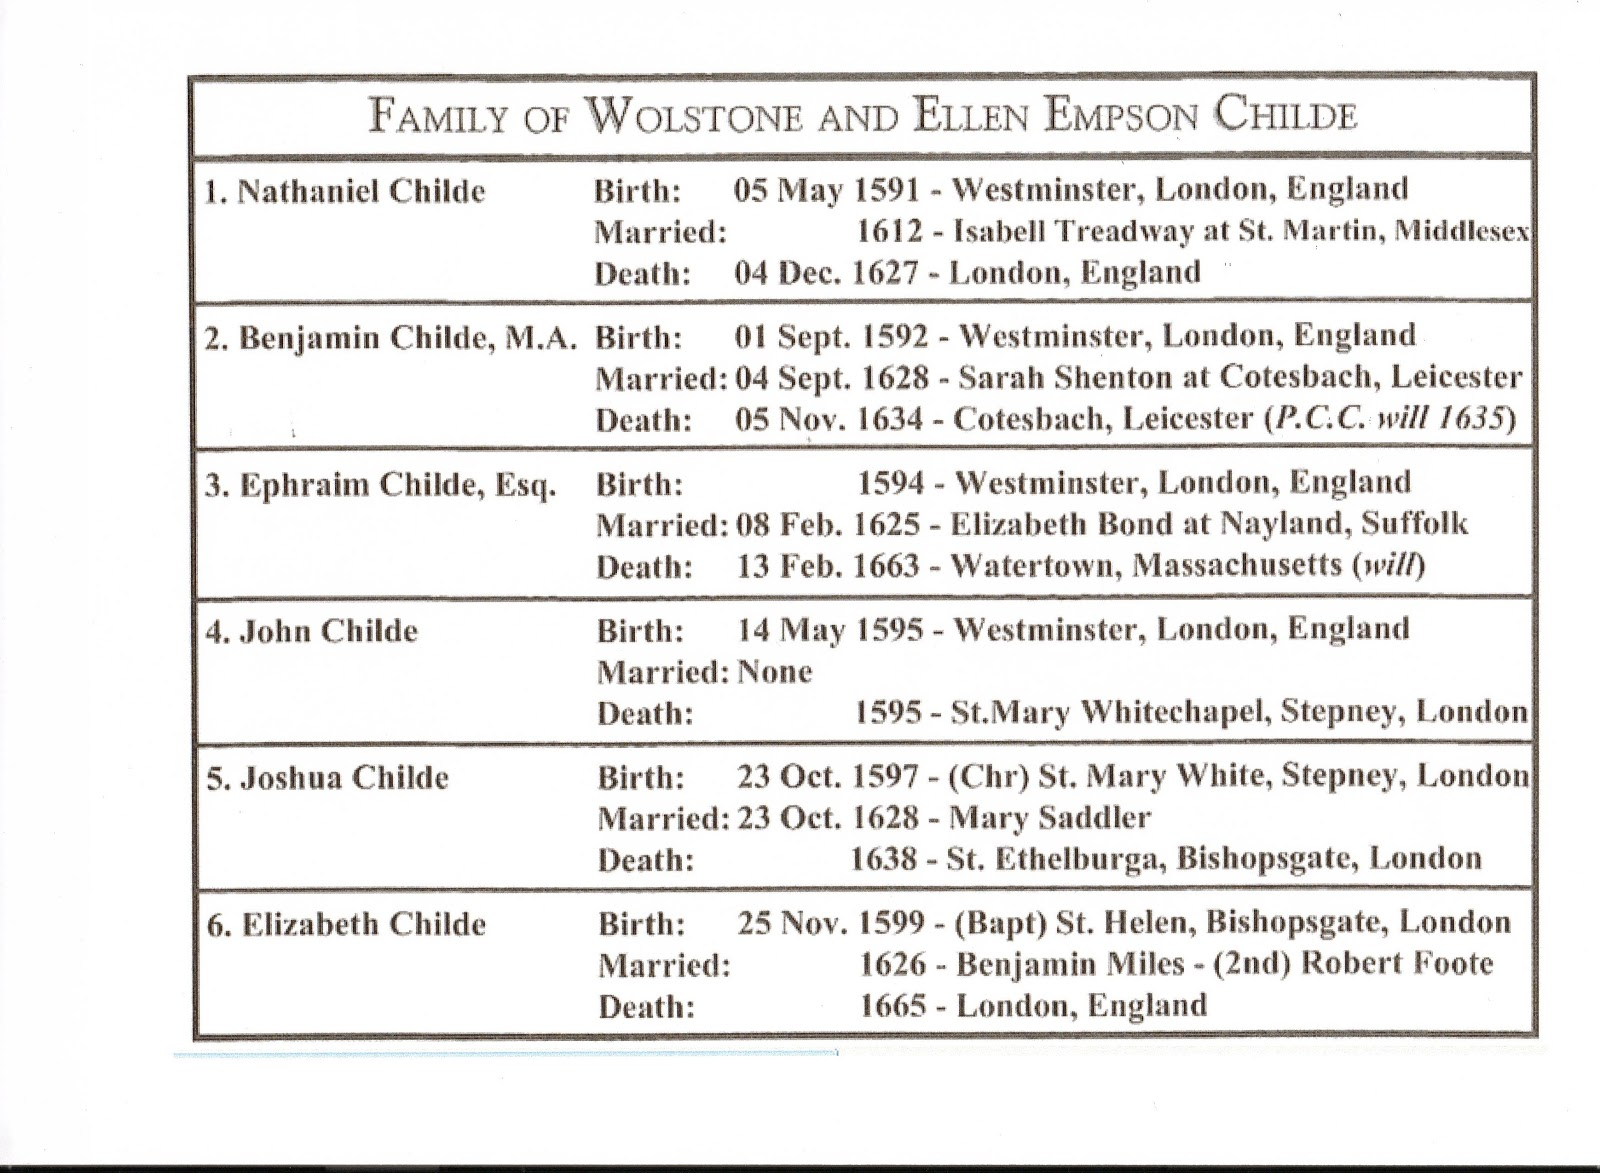 stagge parker histories wolstone childe  family of wolstone and ellen empson childe